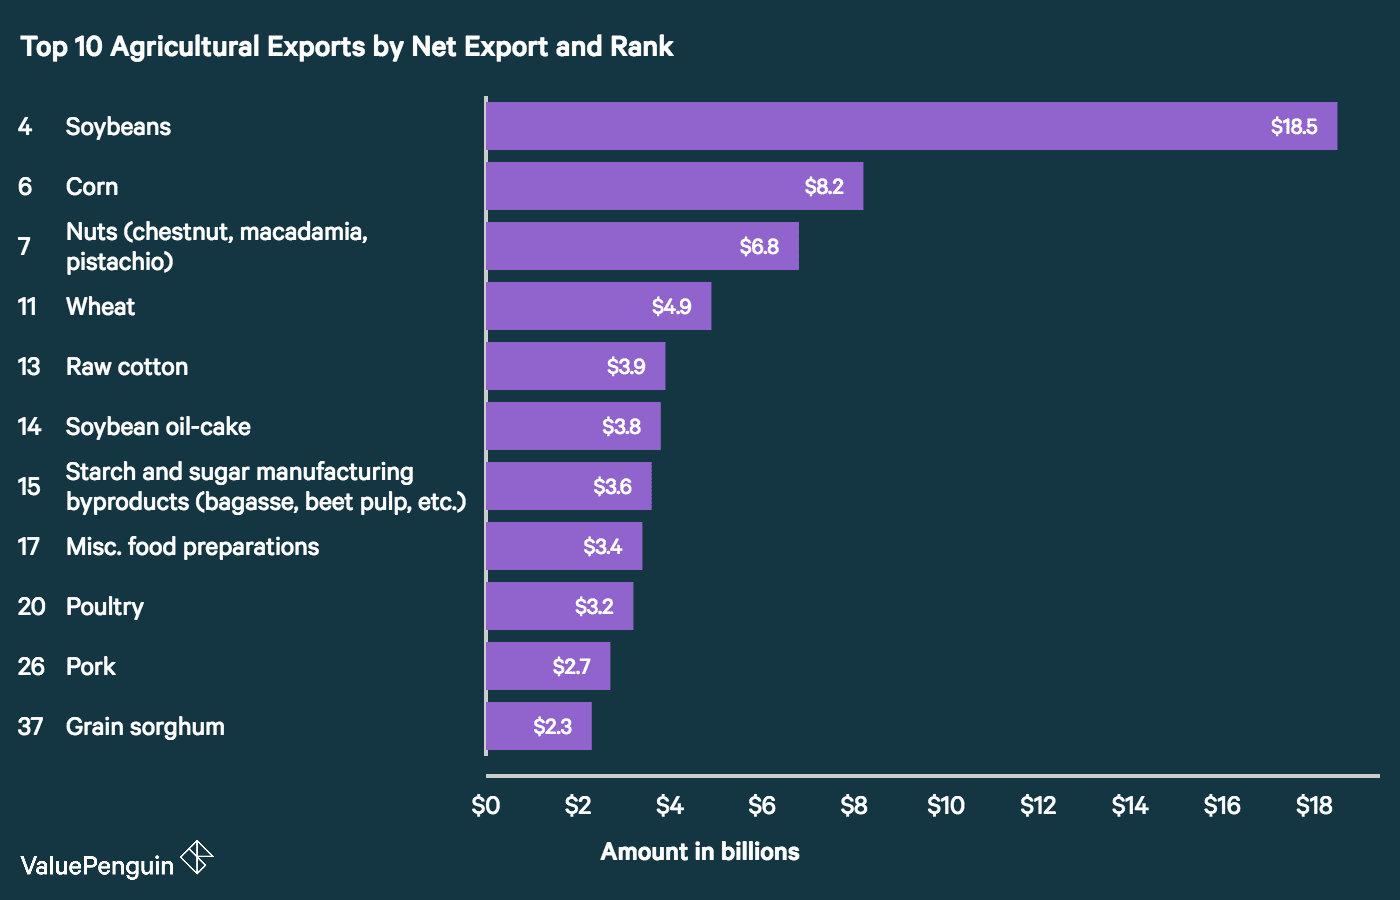 Top 10 Agricultural Exports by Net Export